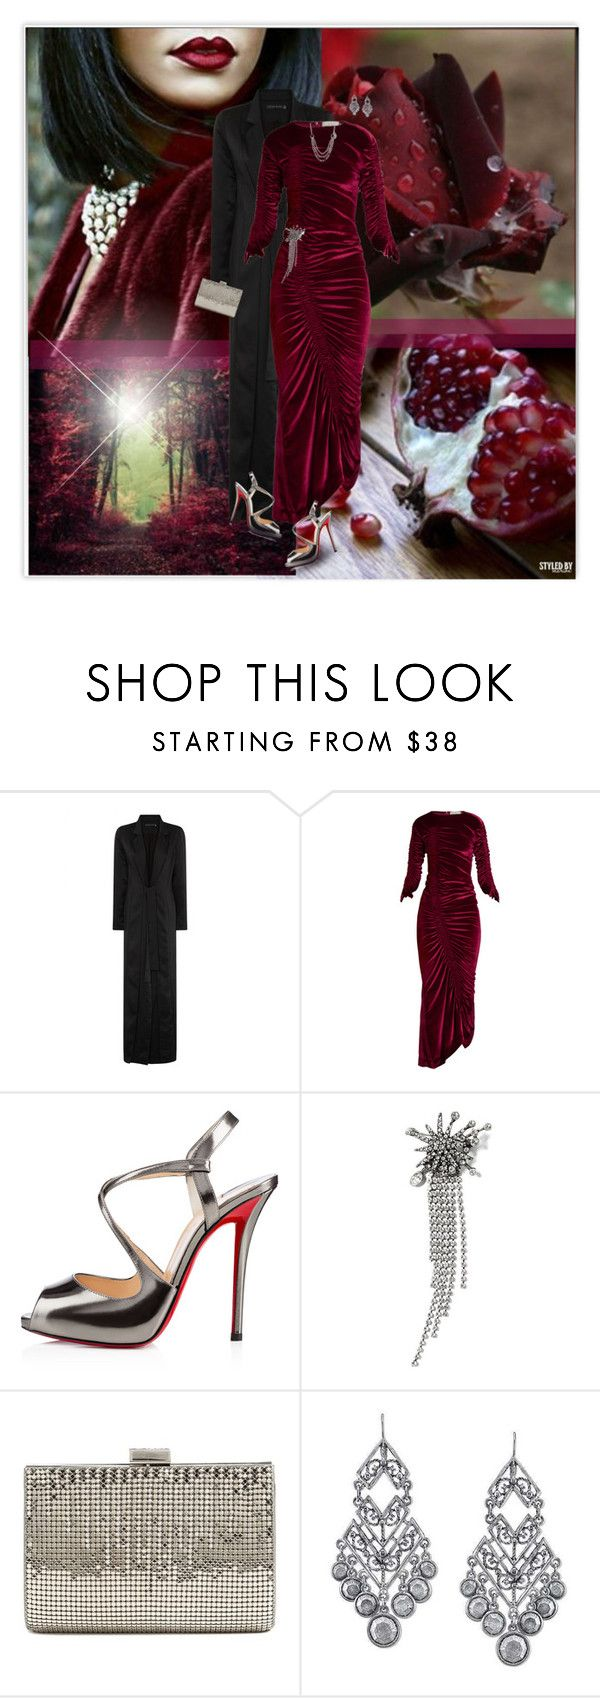 """""""Perfect Party Dress"""" by marion-fashionista-diva-miller ❤ liked on Polyvore featuring Preen, Christian Louboutin, Banana Republic, Whiting & Davis, 1928, formal, partydress, formalwear and HolidayParty"""